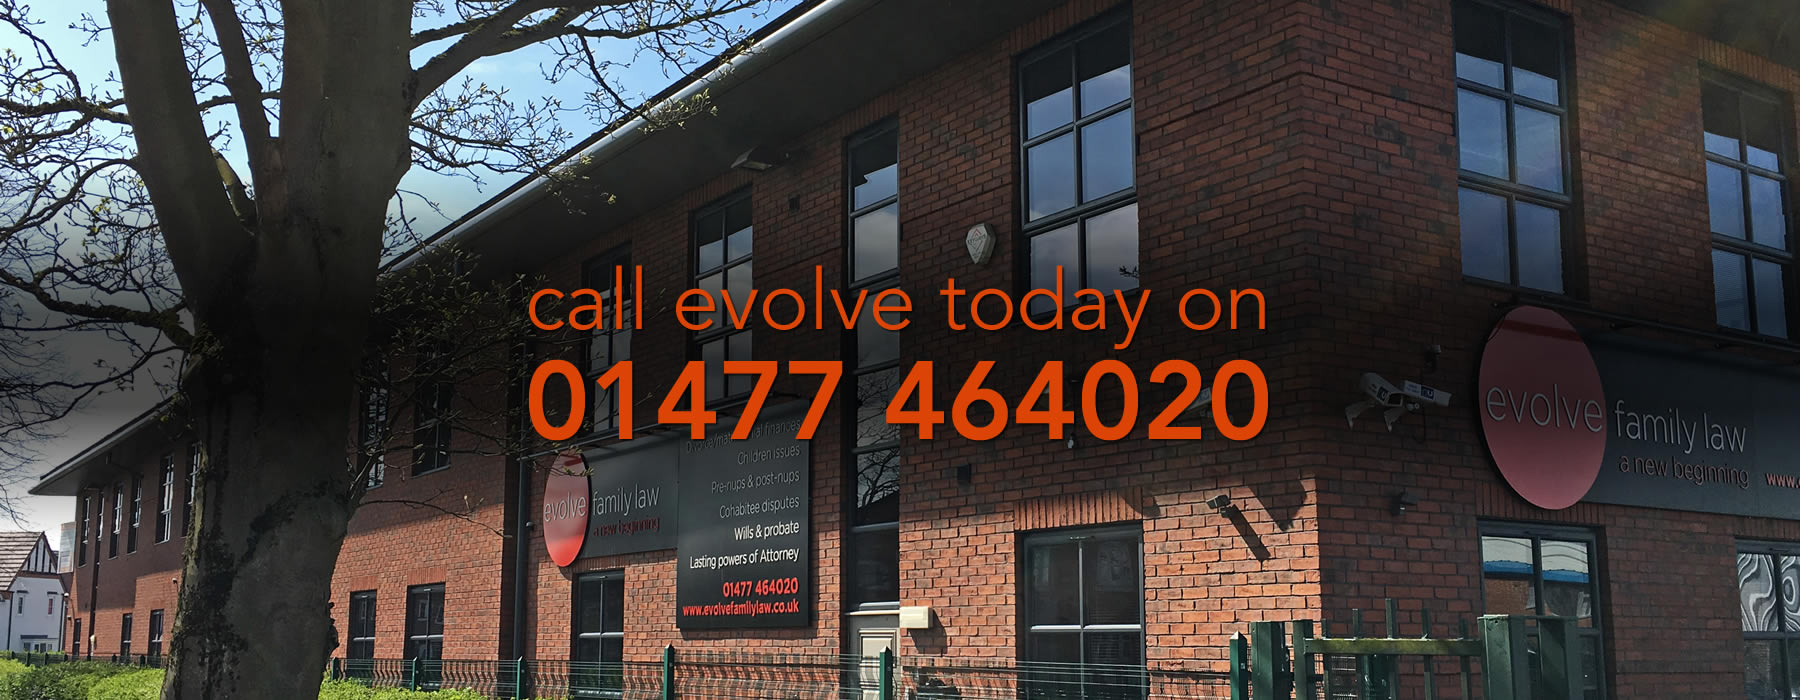 Contact Evolve Family Law